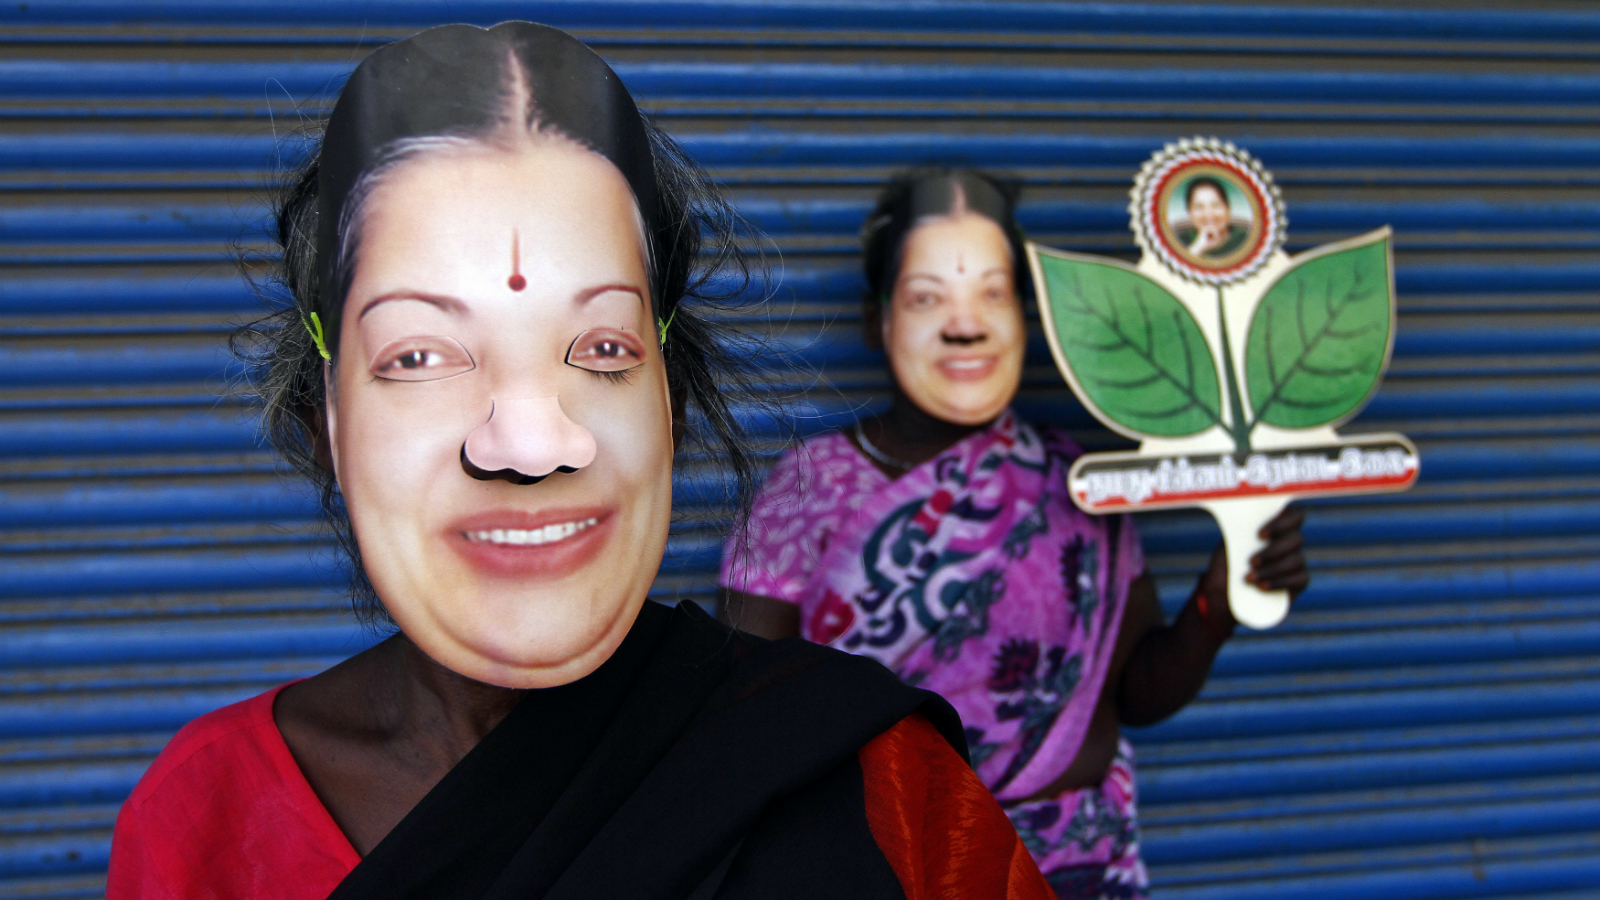 Supporters of J. Jayalalithaa, chief minister of India's Tamil Nadu state and chief of Anna Dravida Munetra Khazhgam (AIADMK), wear masks and hold her party's symbol during an election campaign ahead of the general elections in the southern Indian city of Chennai March 21, 2014. The politics of forming India's next government could come down to how many seats a 1960s matinee siren can wrest from a rival named Stalin in Tamil Nadu. Picture taken March 21, 2014.